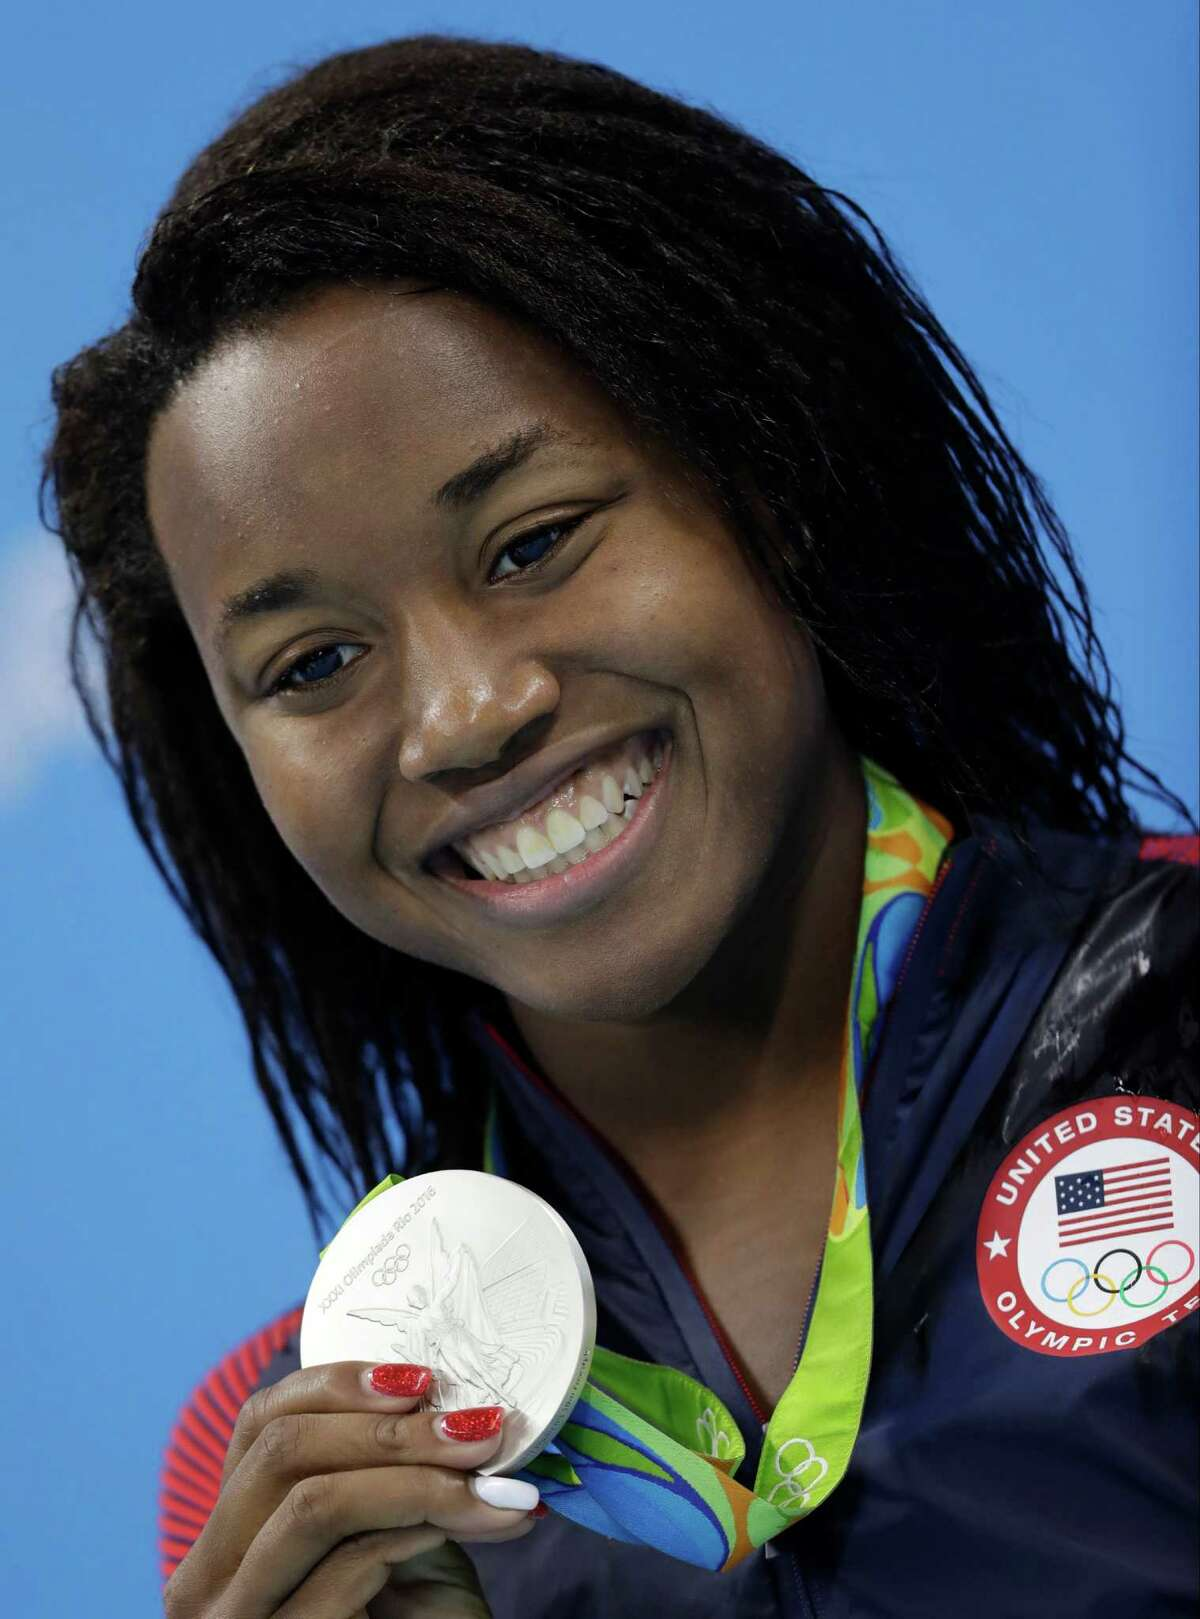 Simone Manuel - The Sugar Land native set both an Olympic and an American record for the 100-meter freestyle swim and became the first African-American woman to win an Olympic gold for an individual swimming event.